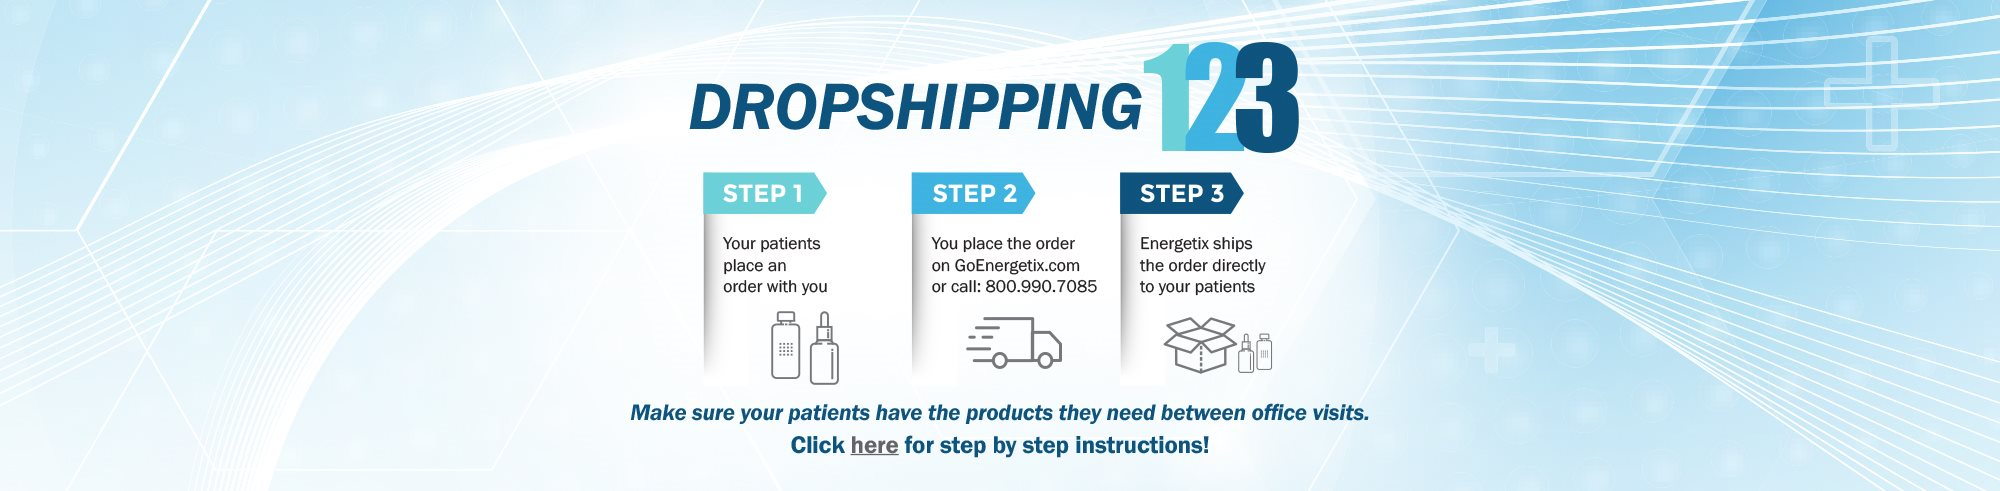 Tips for Drop Shipping